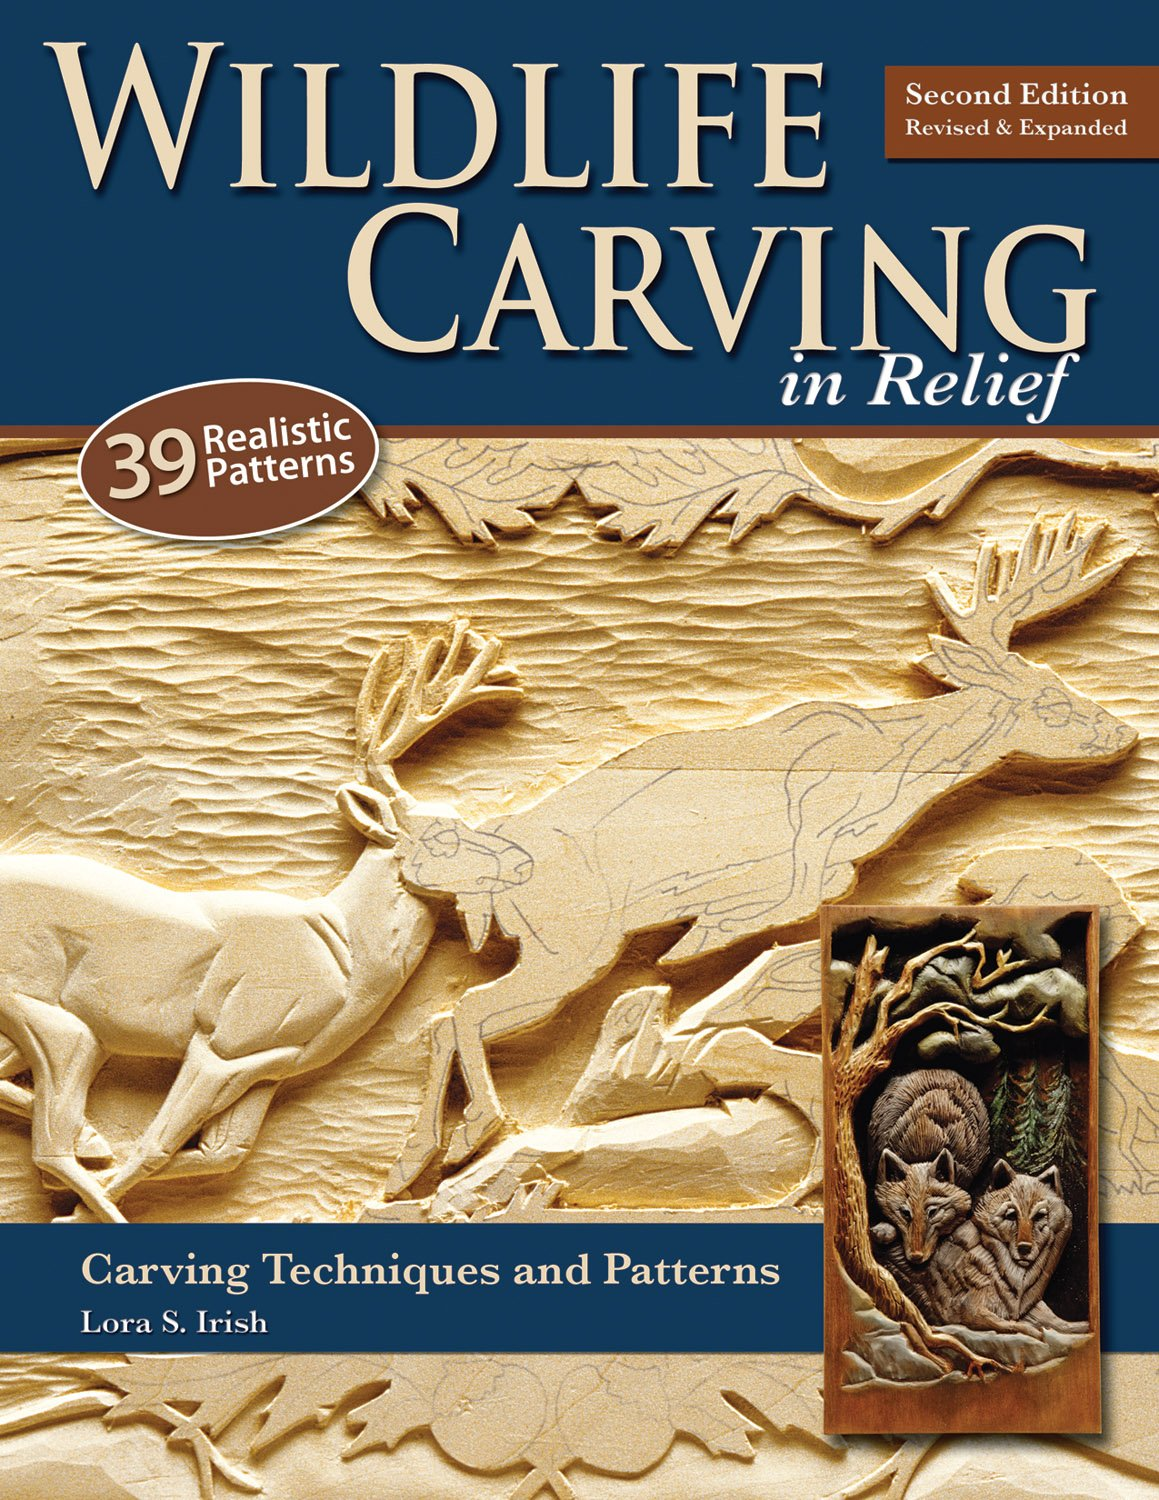 Wildlife Carving in Relief, Second Edition Revised and Expanded: Carving Techniques and Patterns